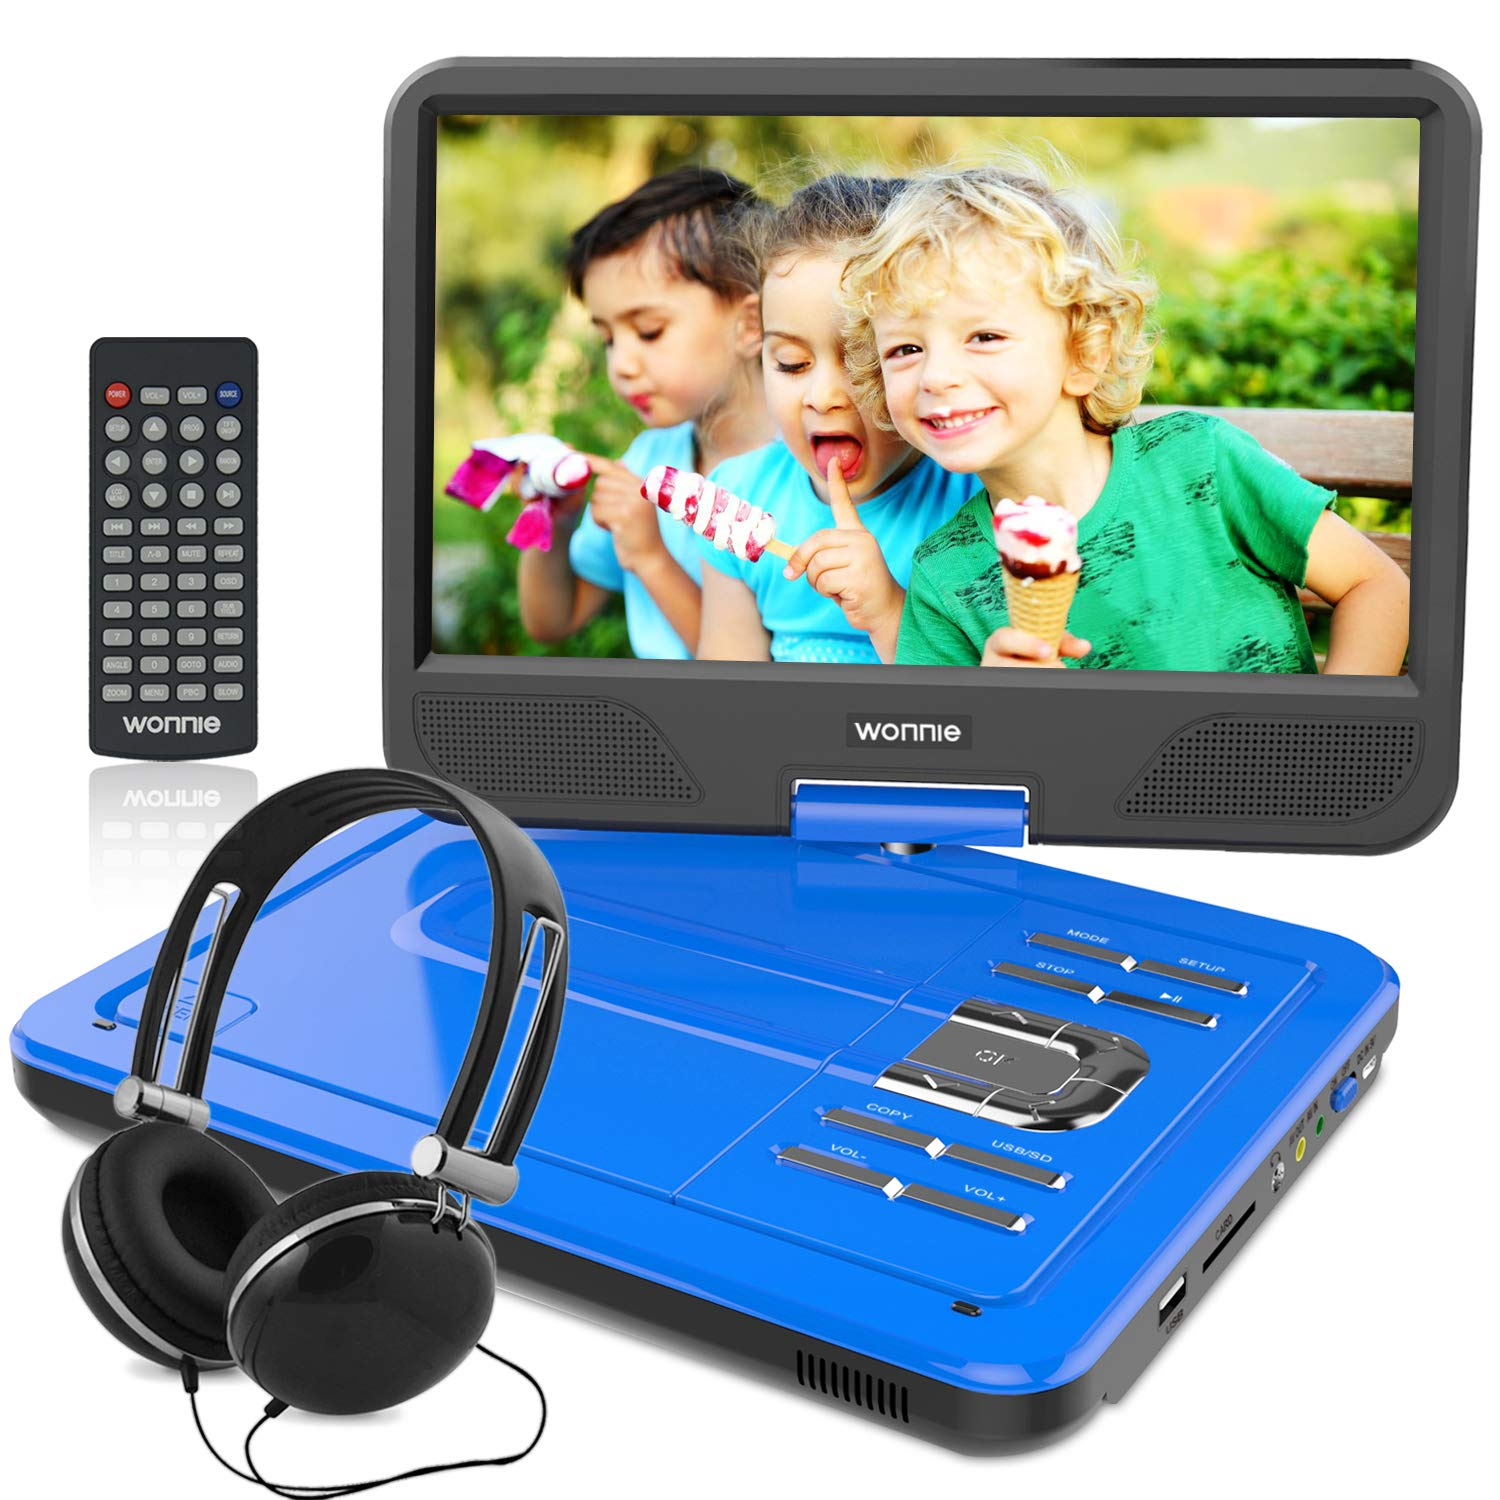 WONNIE 12.5 Inch Portable DVD Player with 4 Hour Rechargeable Battery,10.5'' Swivel Screen, USB/SD Slot (BLUE)